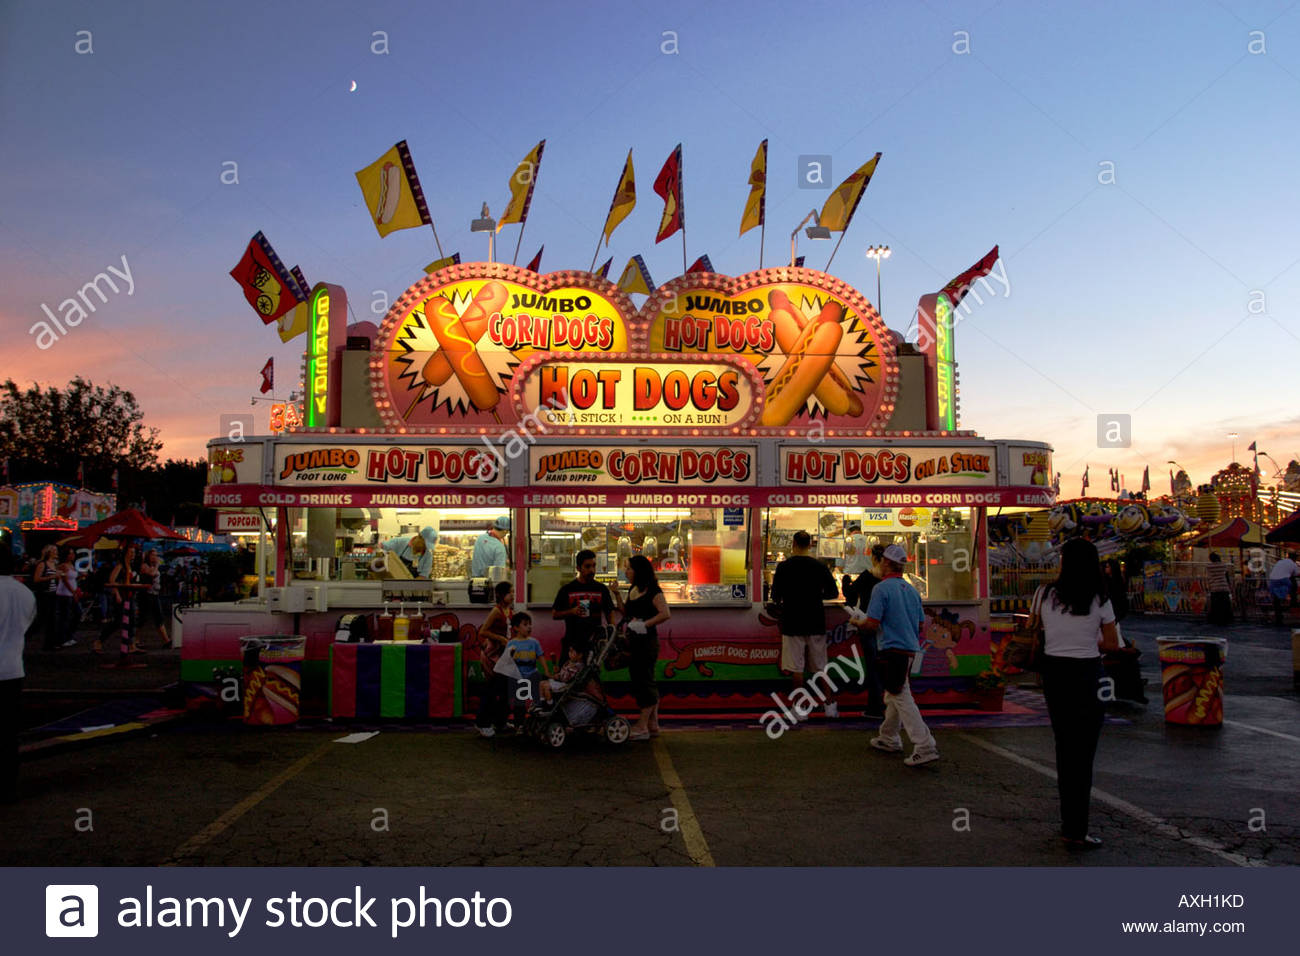 Hot Dog Stand at the Los Angeles County Fair Pomona California - Stock Image